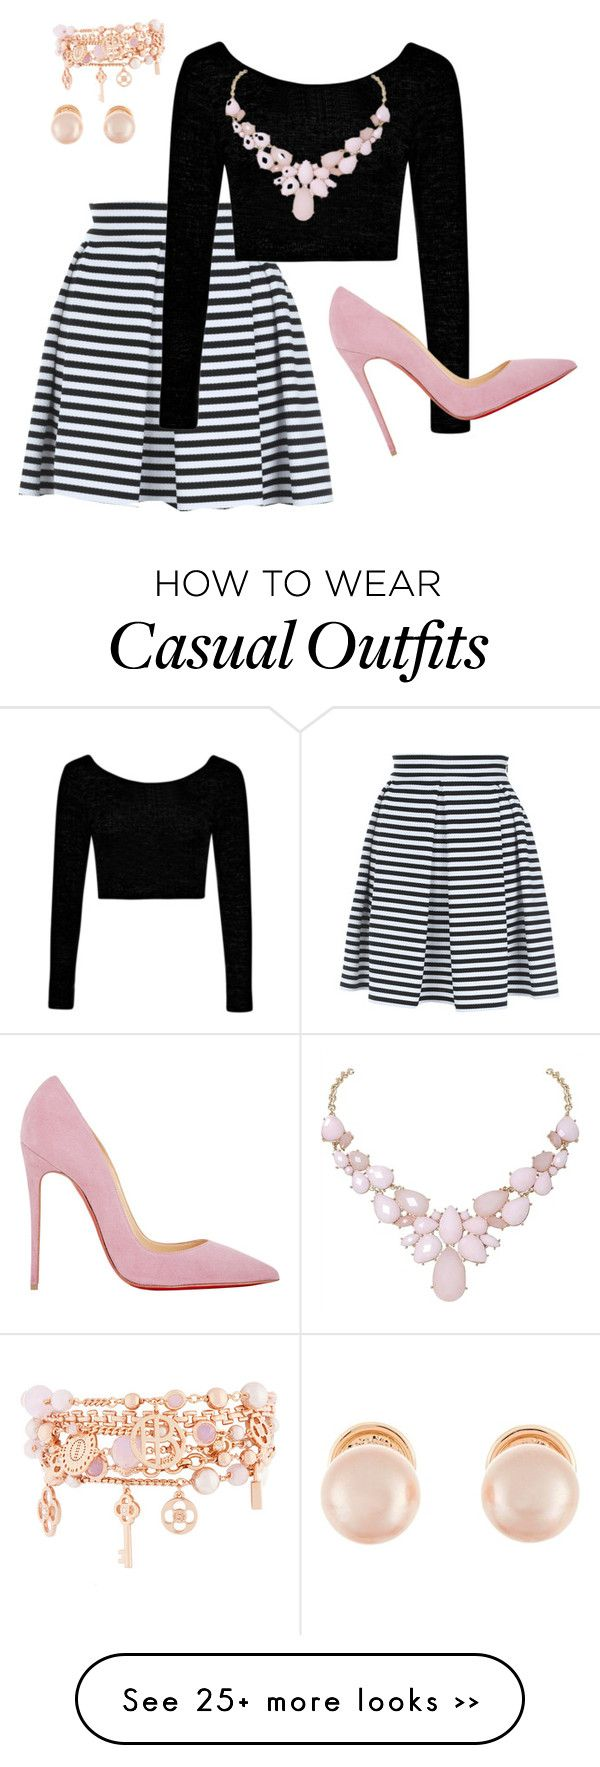 """""""Business Casual"""" by dulce-n-rodriguez on Polyvore featuring Jane Norman, Boohoo, Christian Louboutin, Henri Bendel, Kenneth Jay Lane and Humble Chic"""